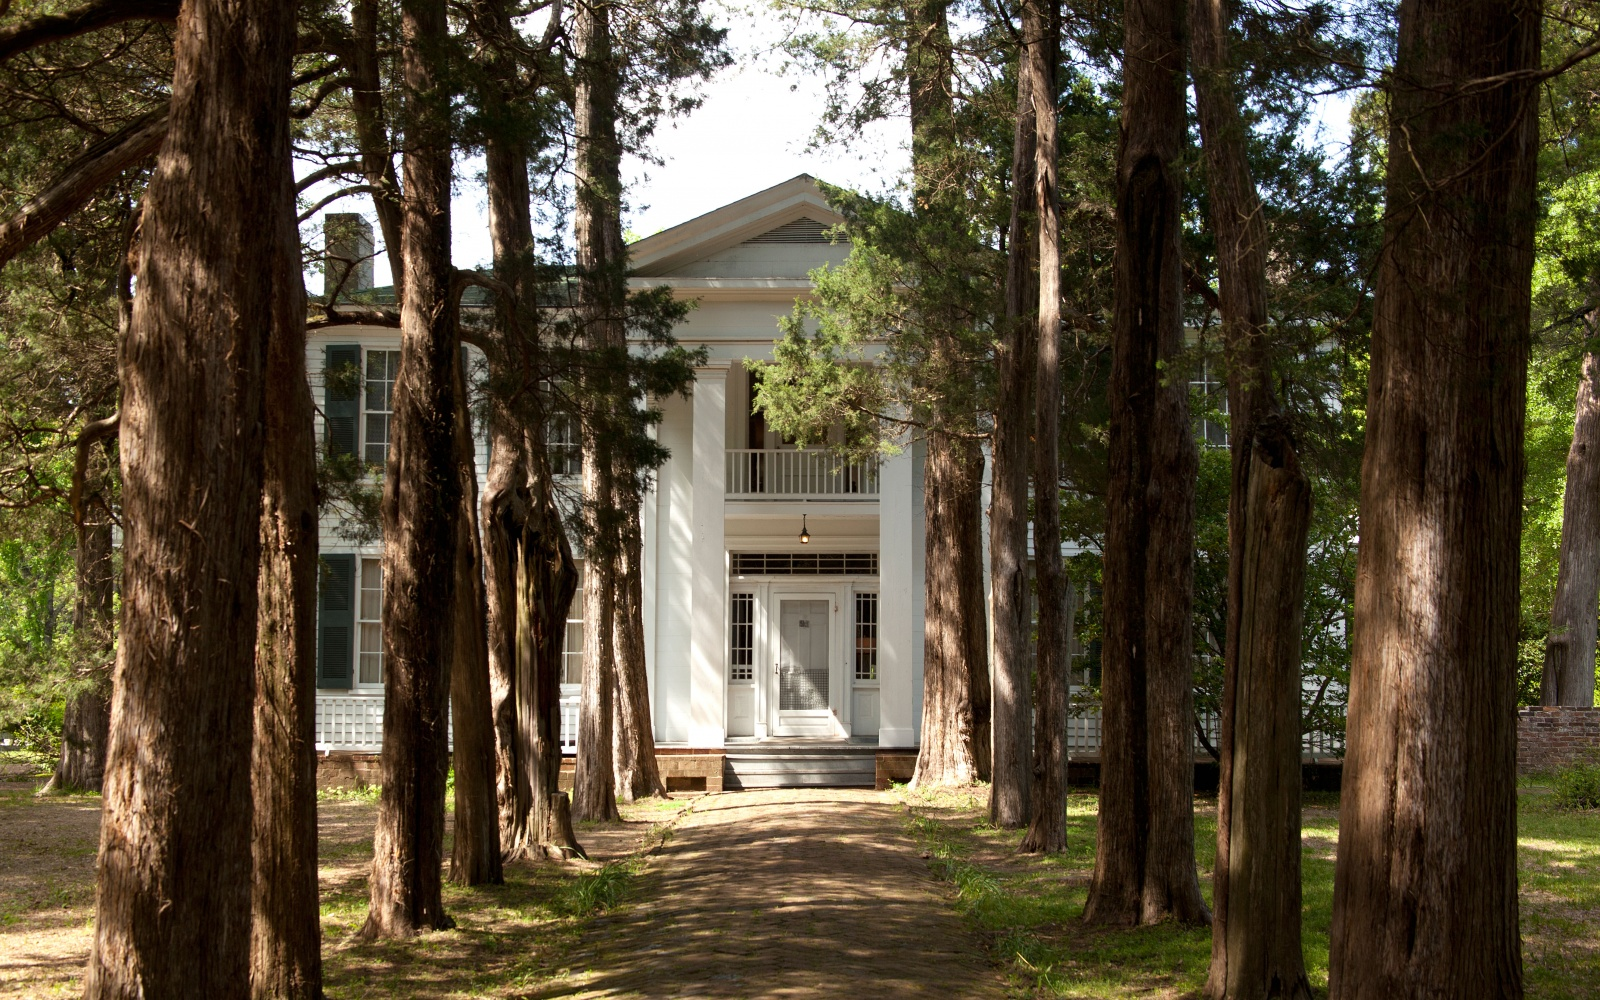 Rowan Oak, Oxford, Mississippi